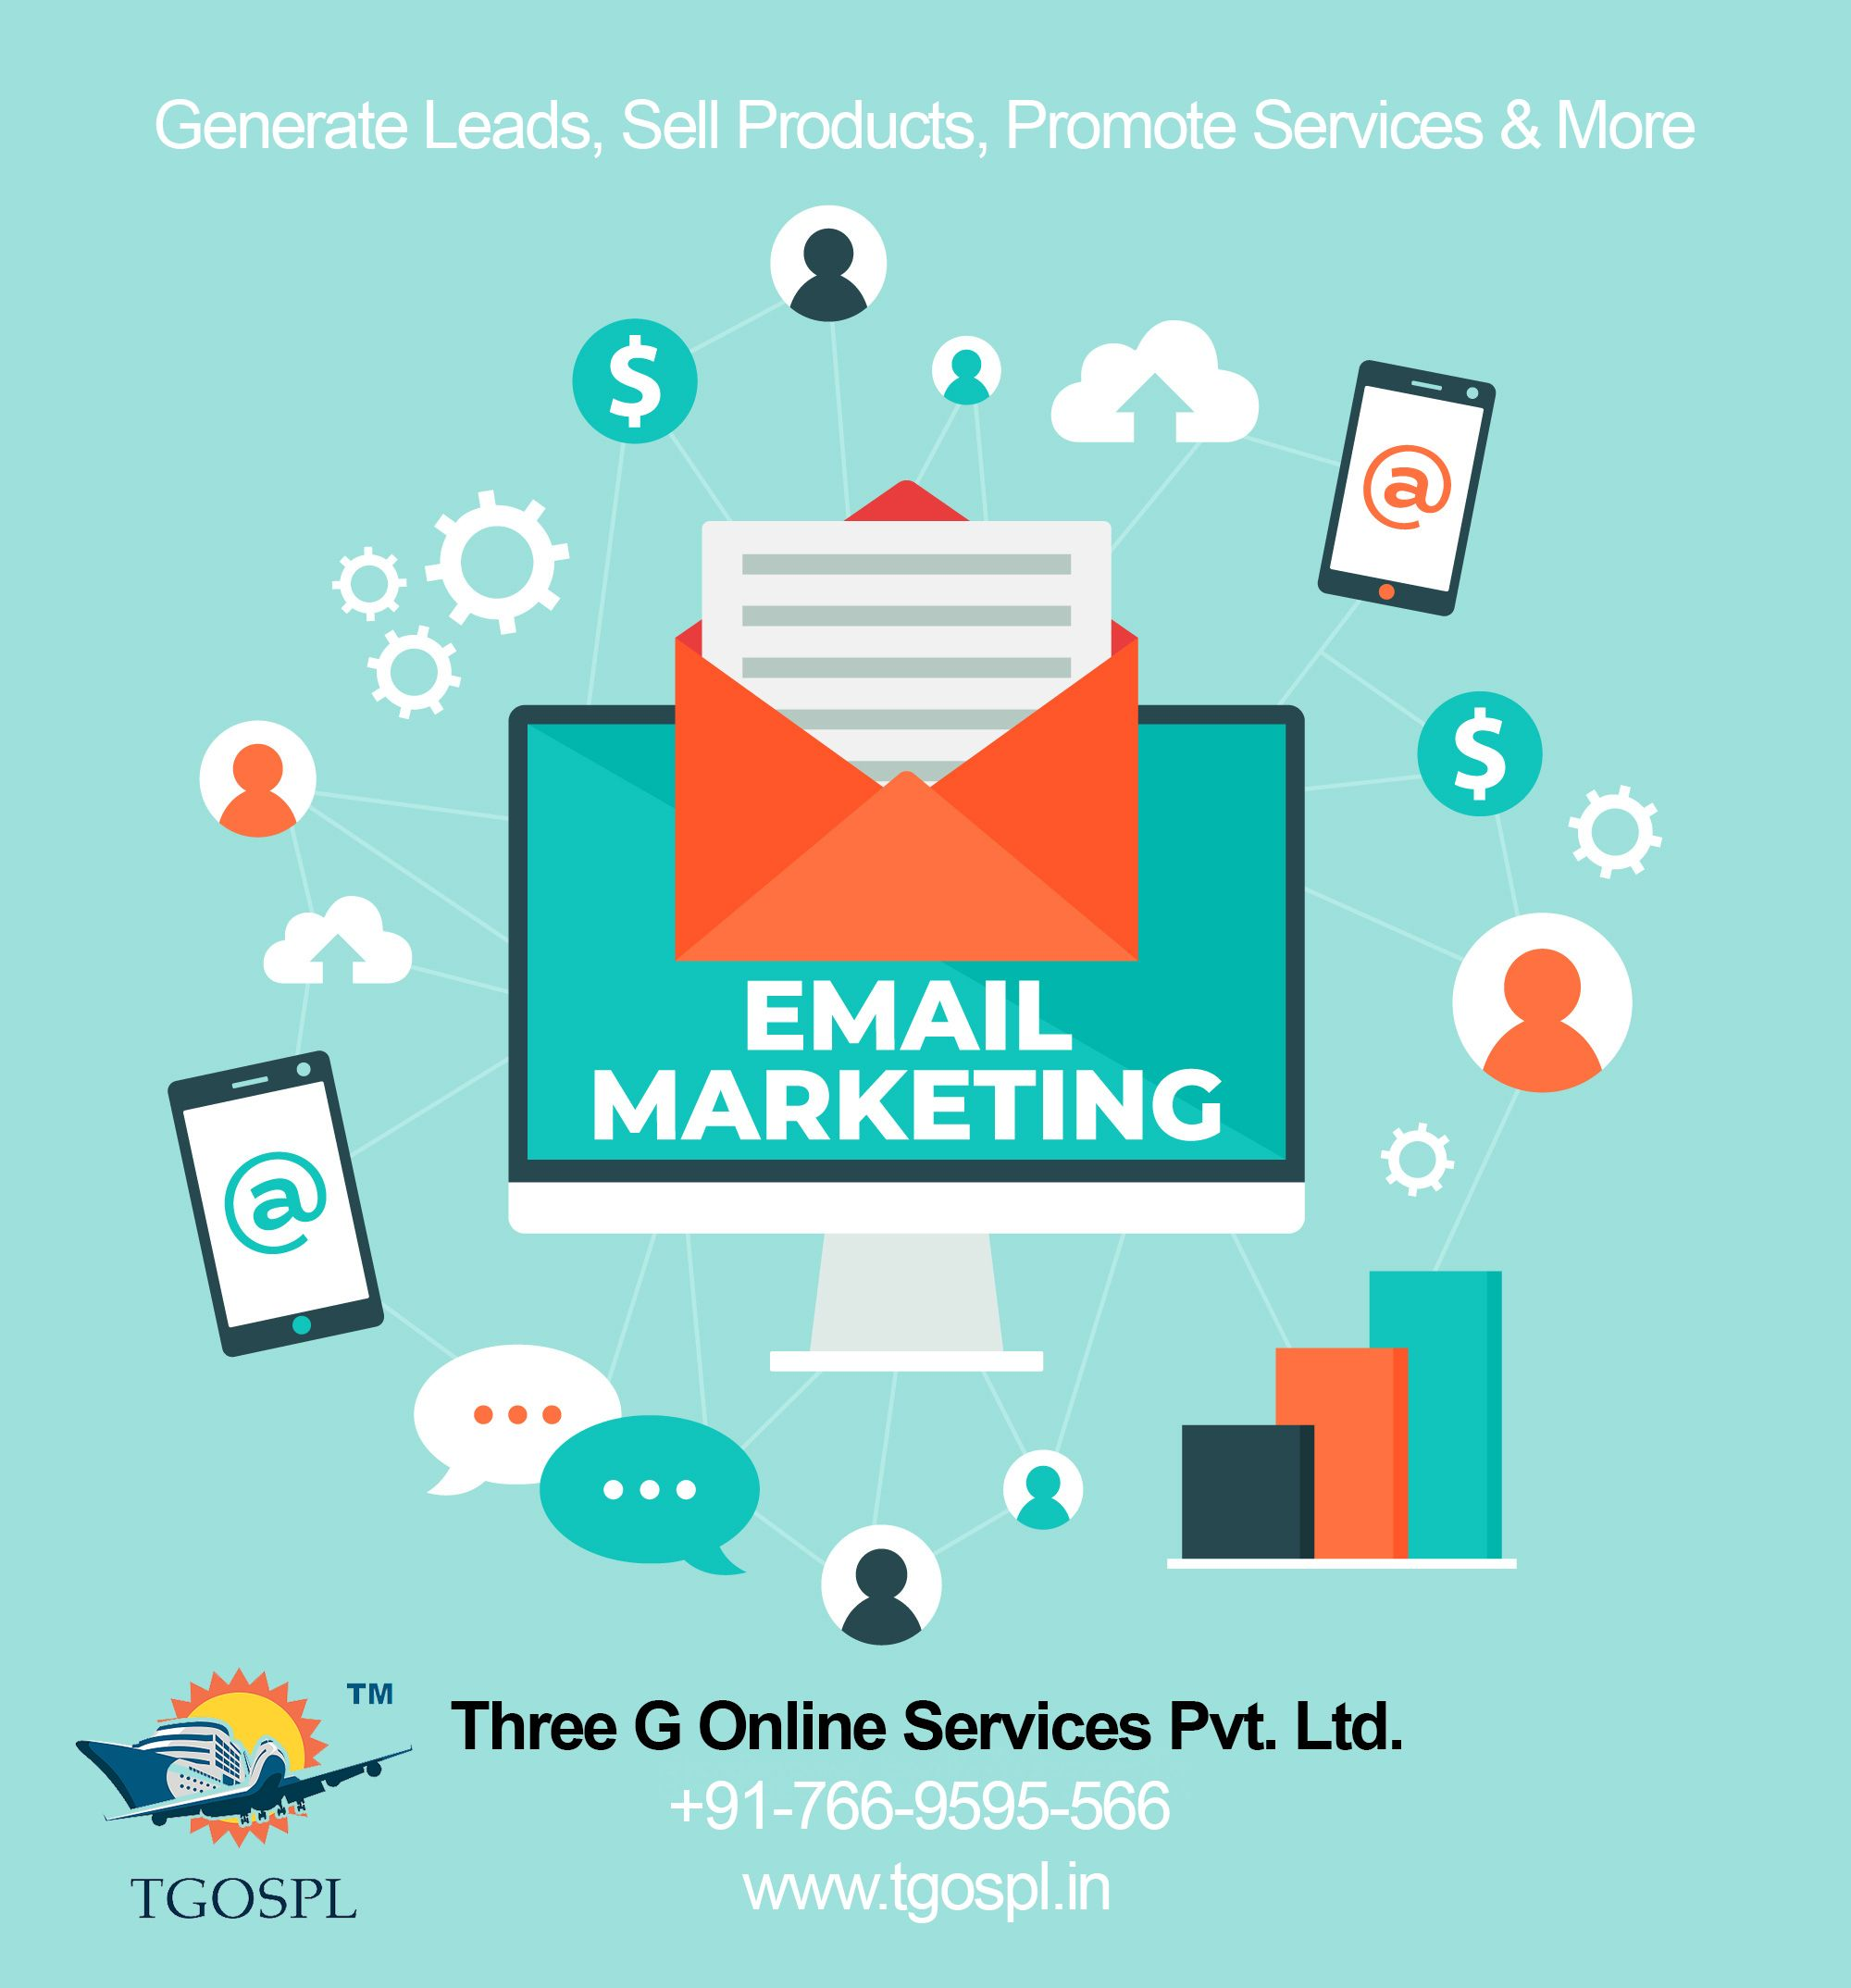 Choose Our Email Marketng Program To Grenerate Leads, Buy